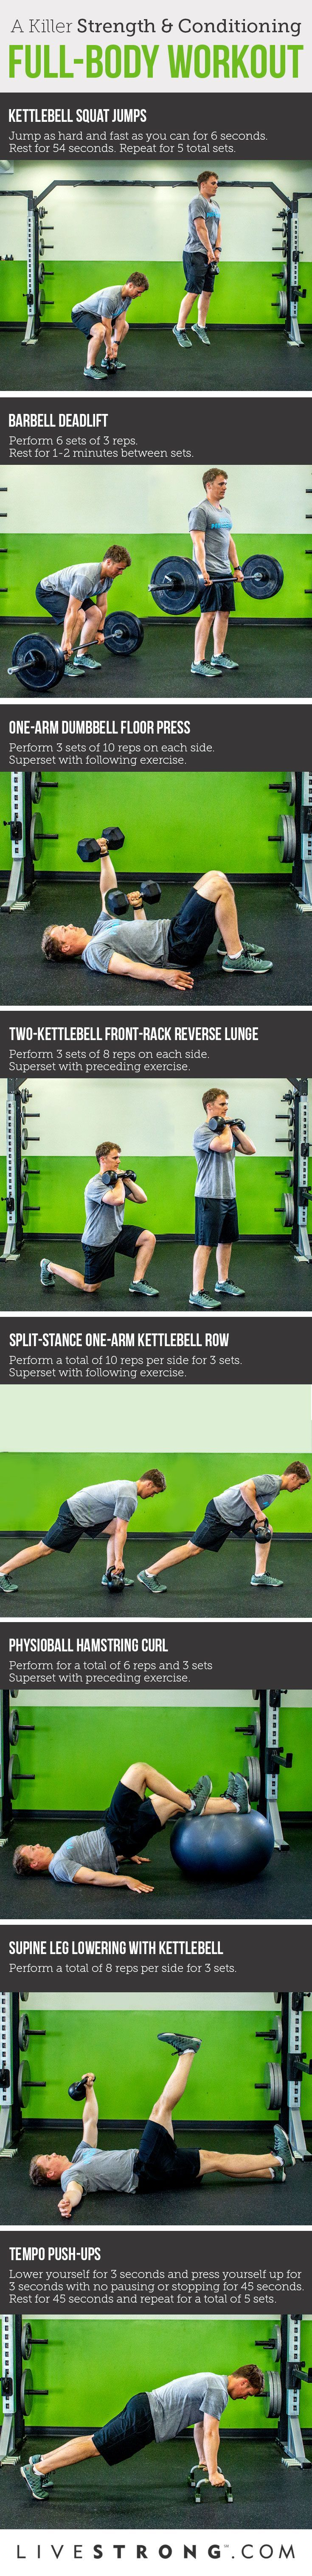 A killer full-body strength-and-conditioning workout.